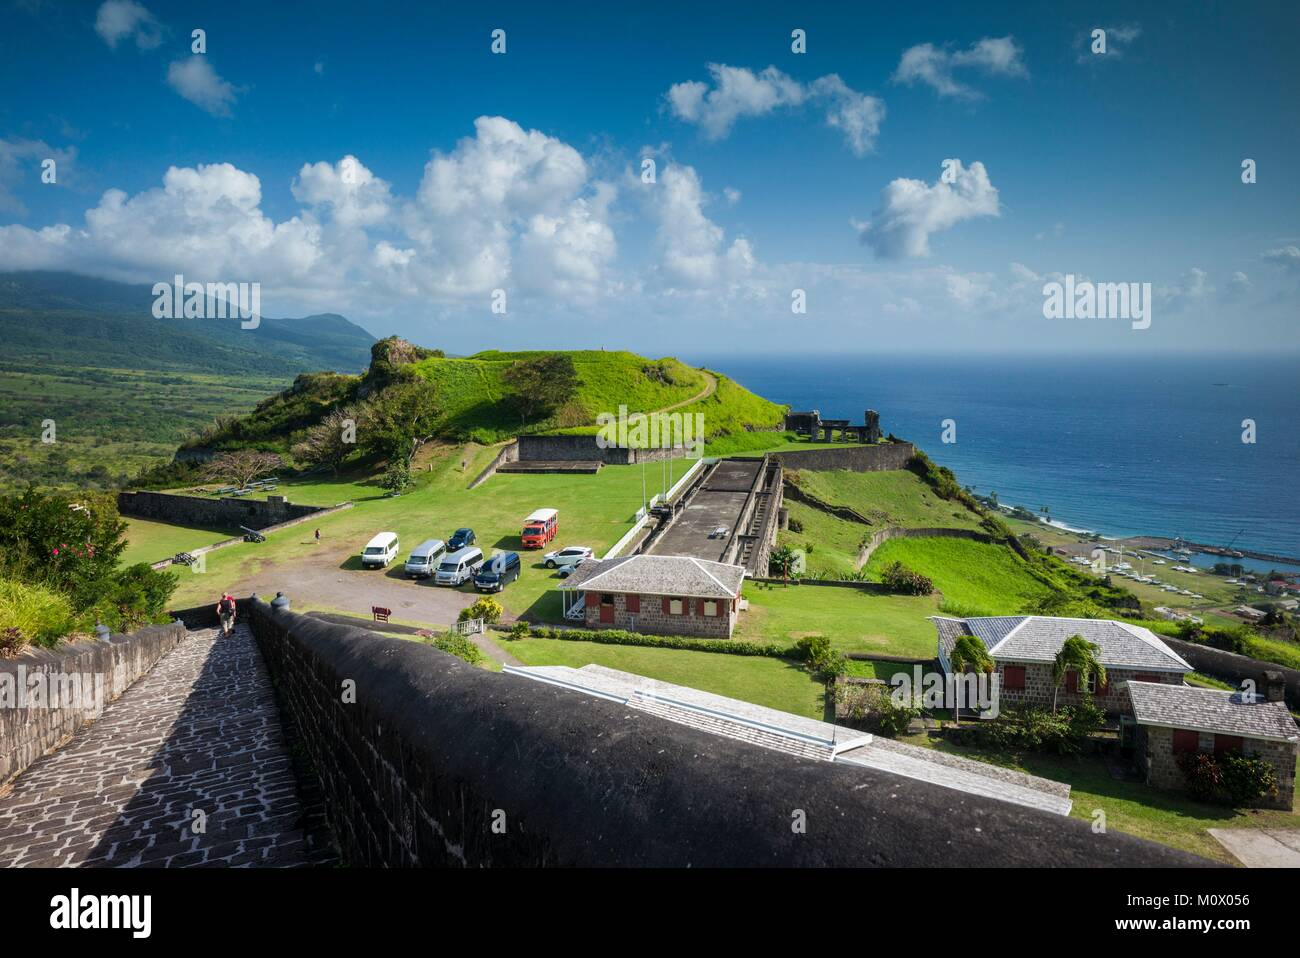 St. Kitts und Nevis, St. Kitts, Brimstone Hill, Brimstone Hill Fortress Stockbild